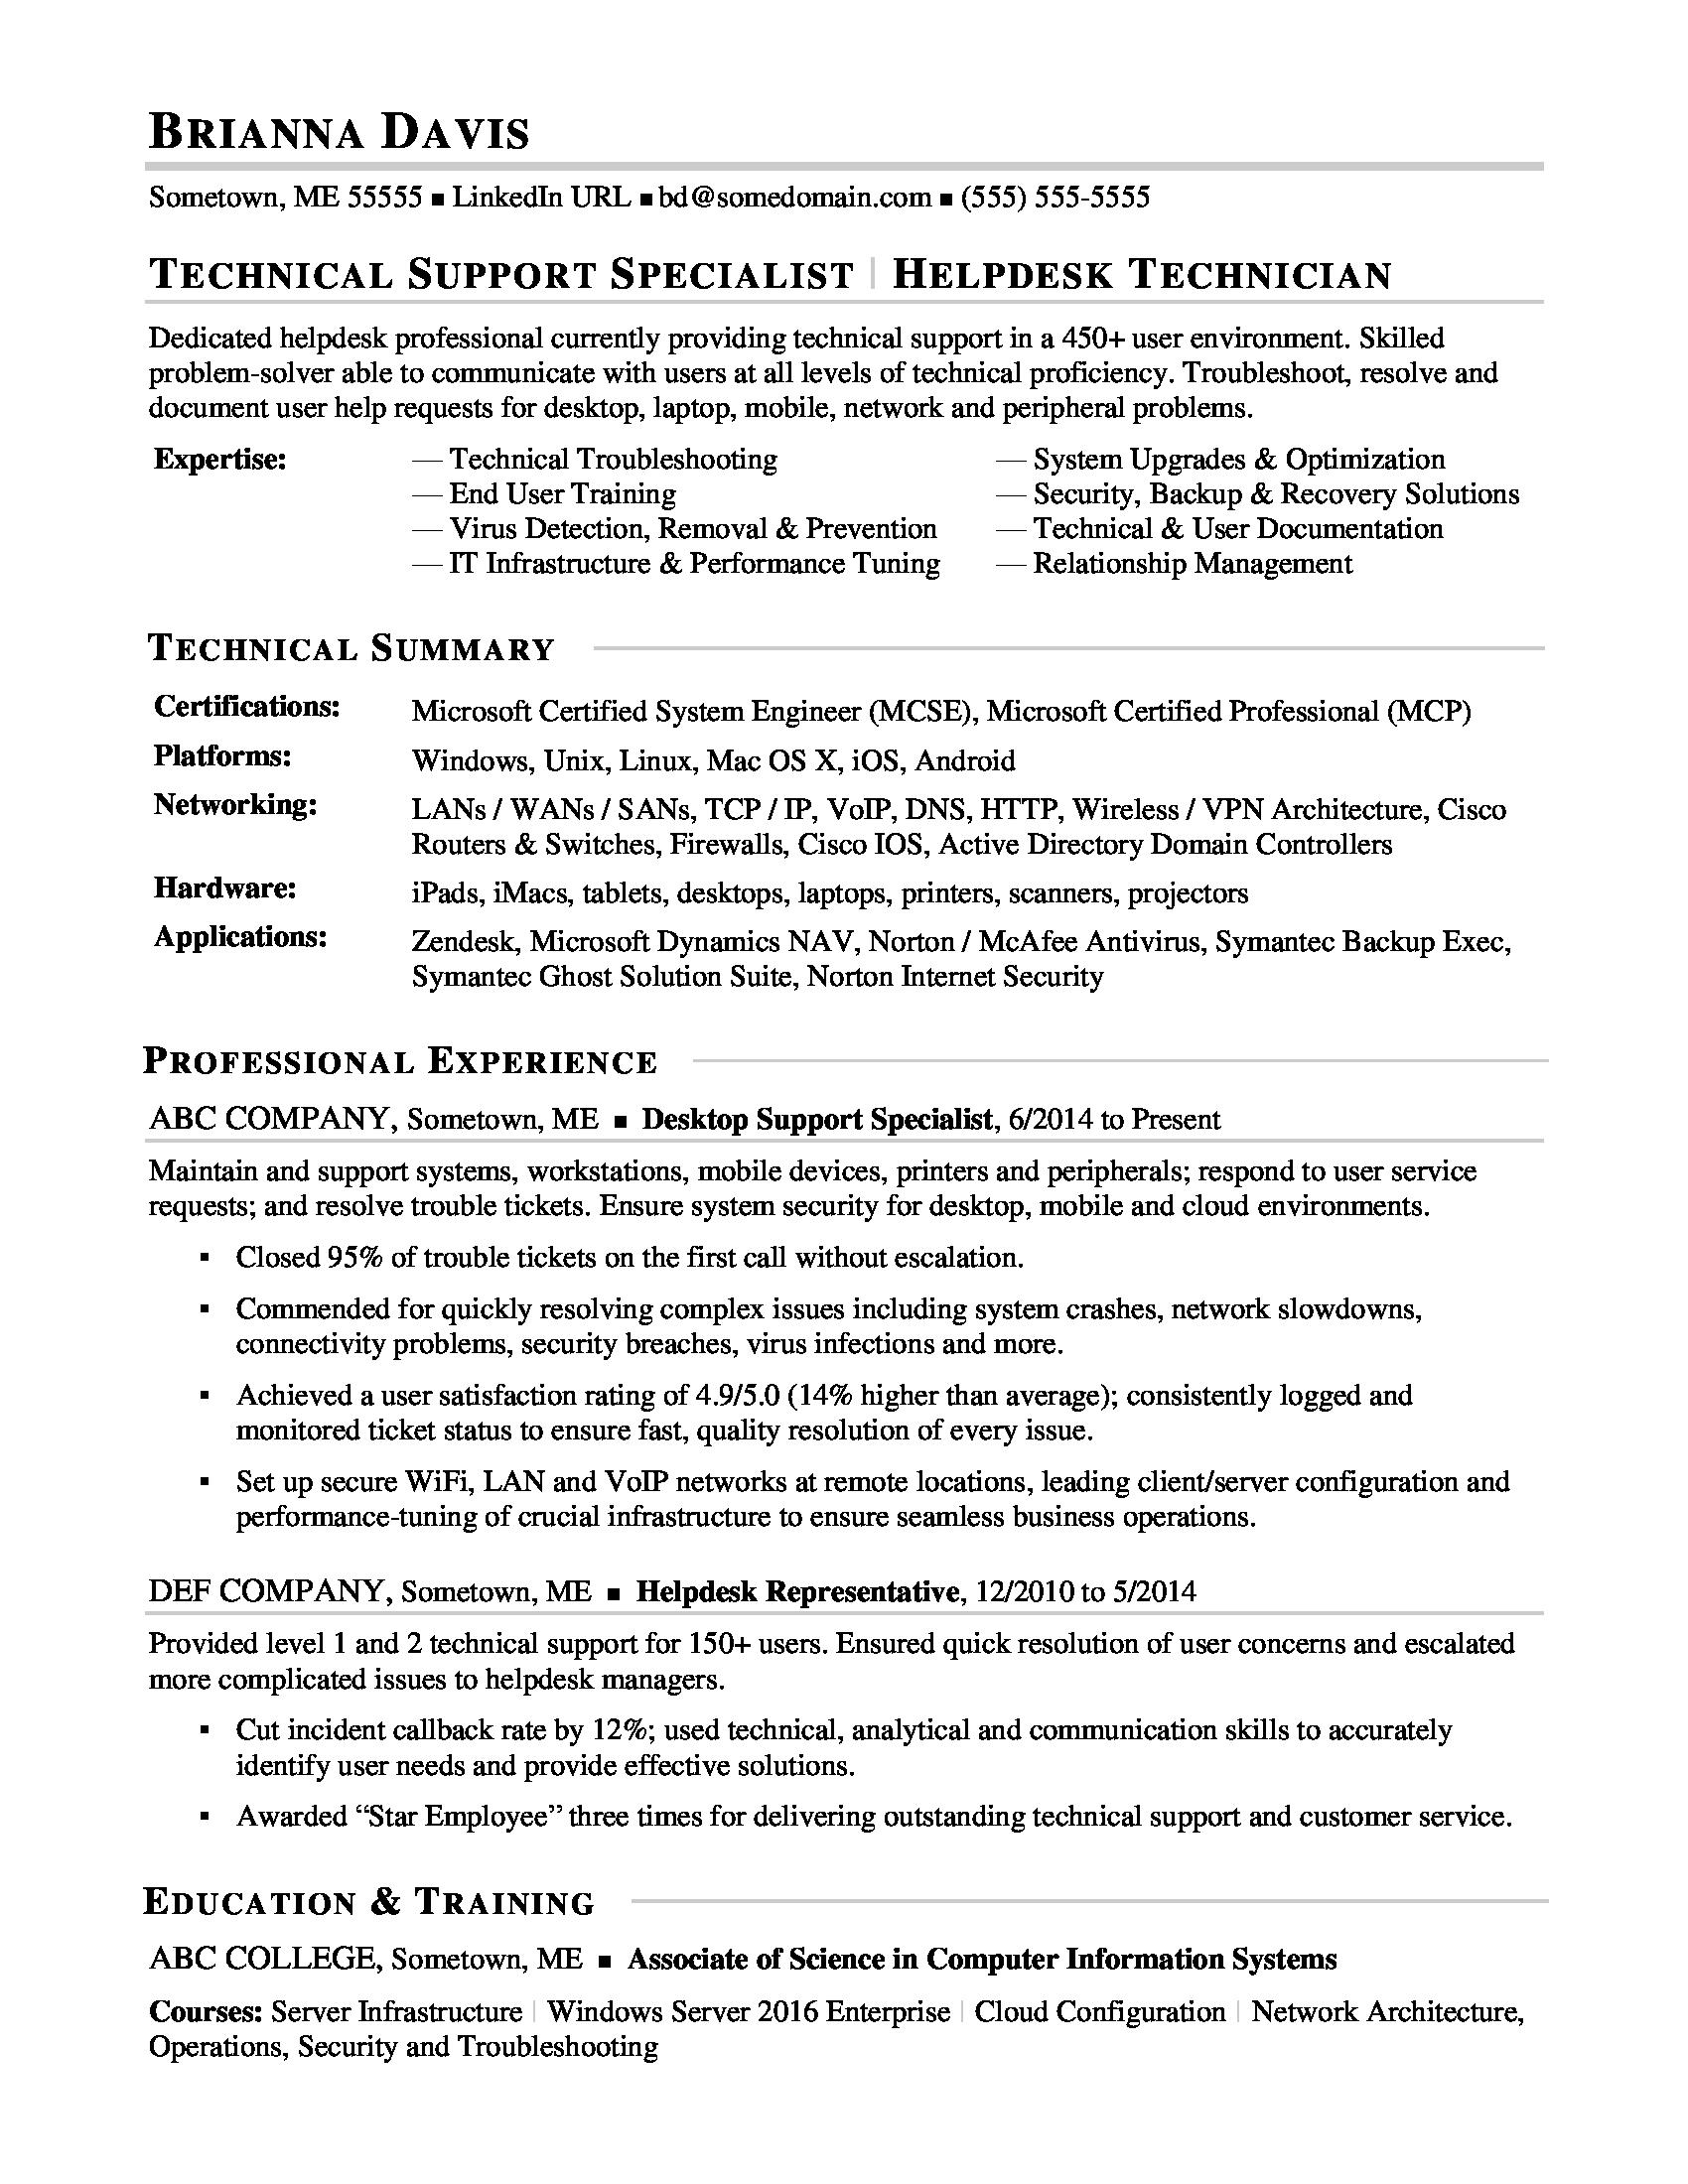 Sample resume for experienced IT help desk employee | Monster.com